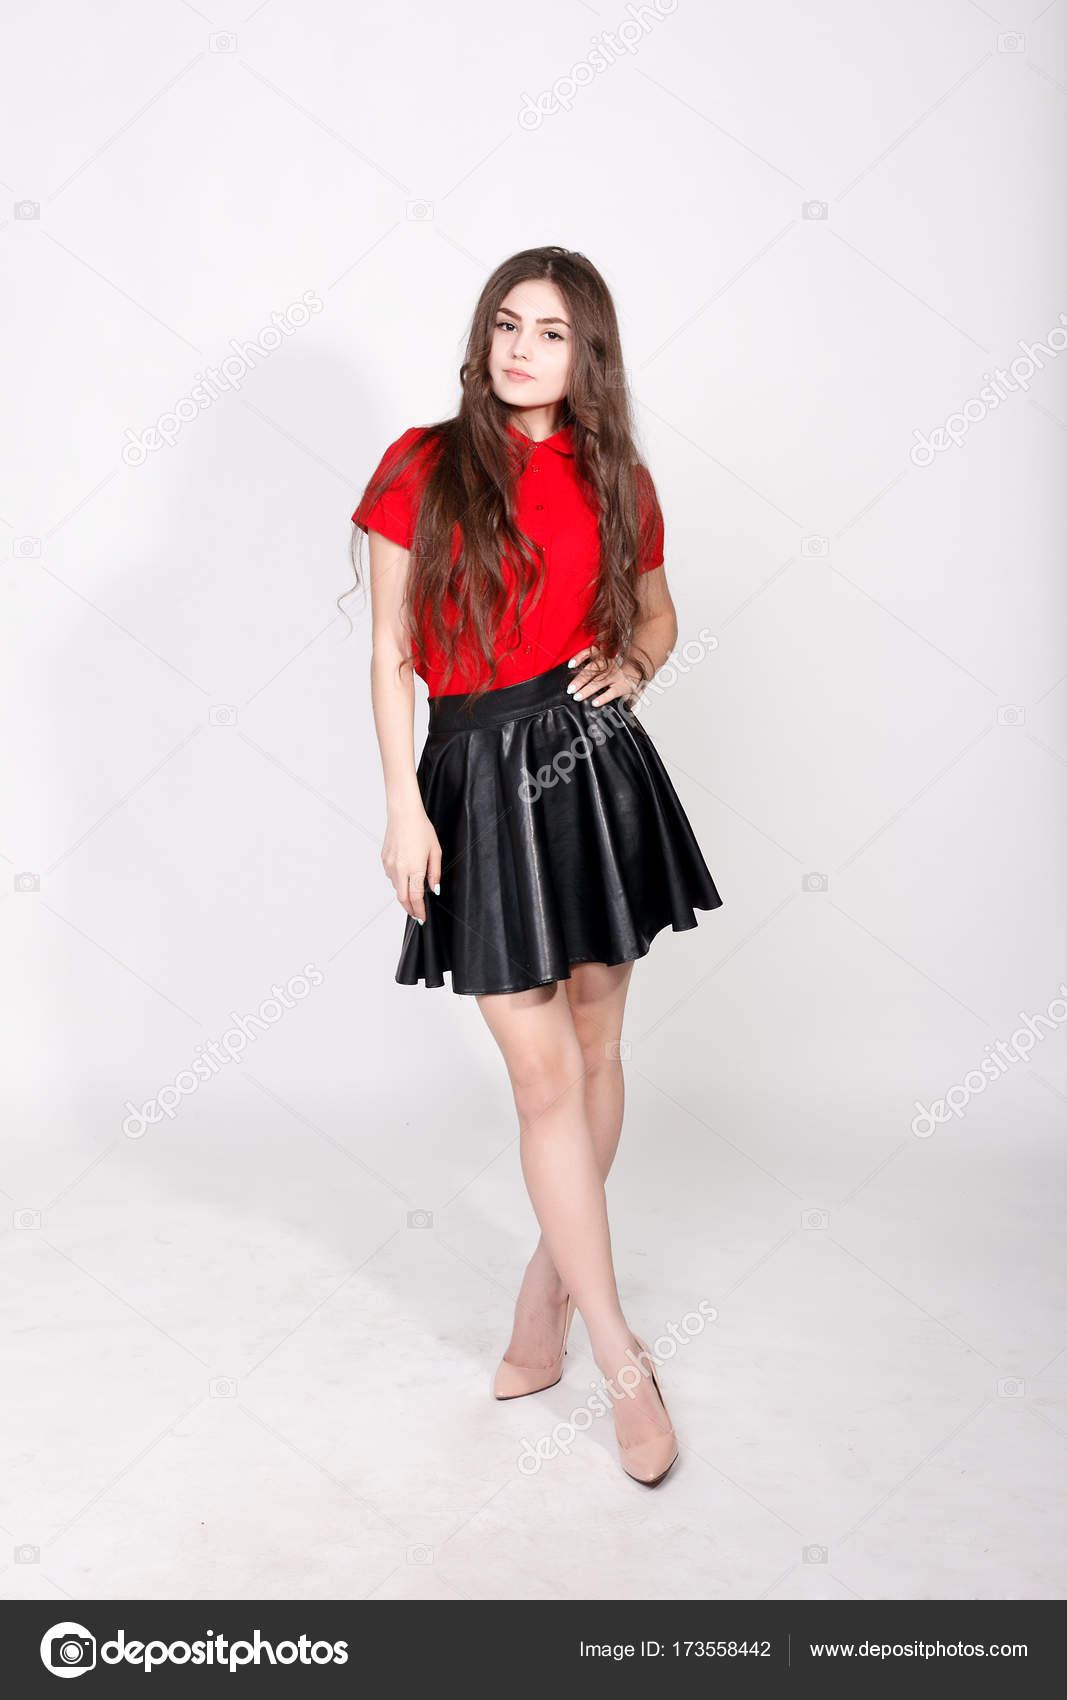 1f8f986239 Teeth,emotions, health, people and lifestyle concept - Fashionable young  brunette woman posing wearing leather skirt and red shirt, looking at  camera.